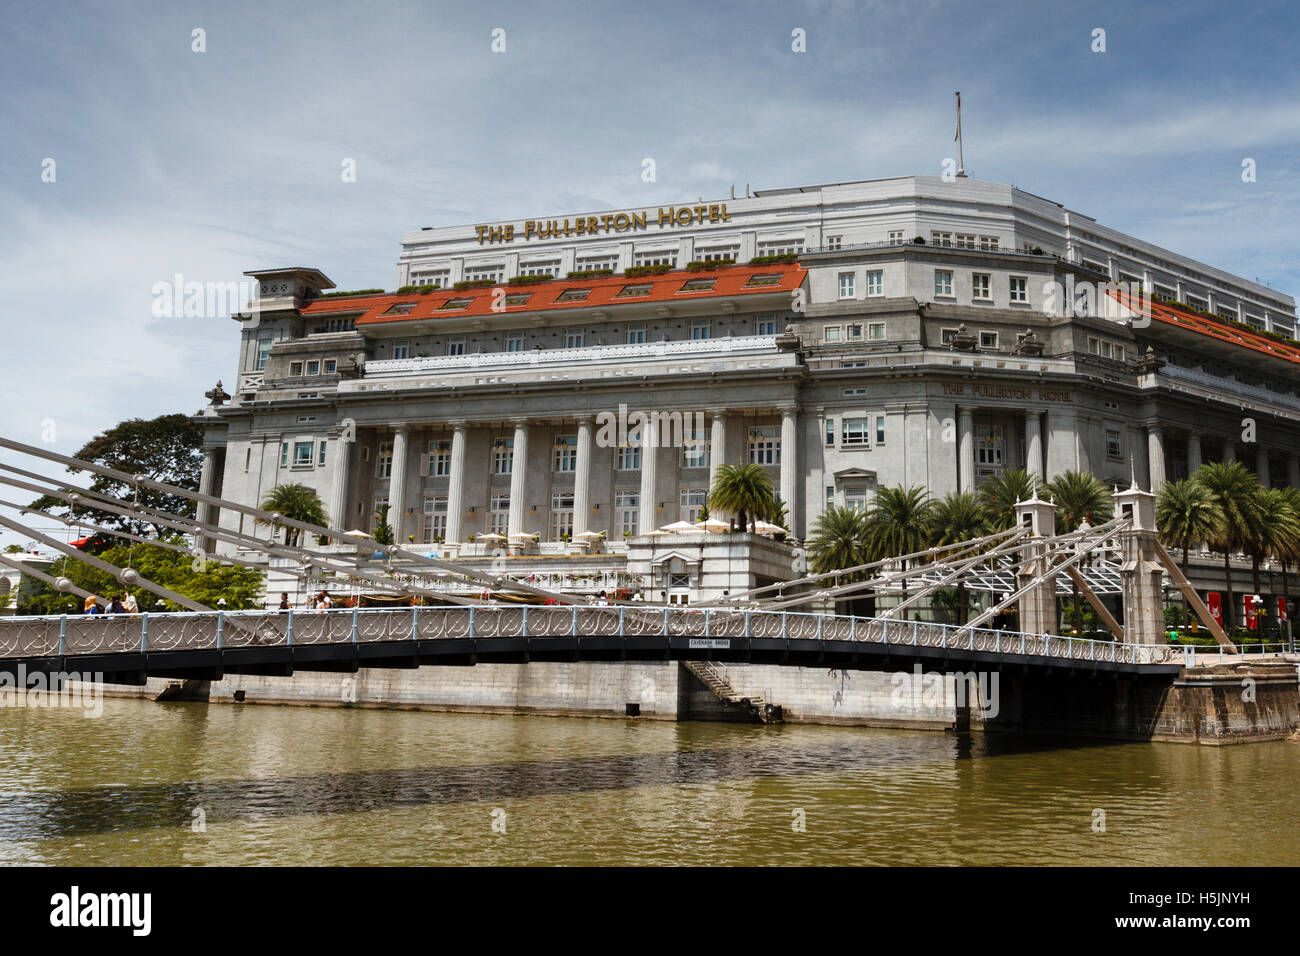 Fullerton hotel on the river in Singapore - Stock Image